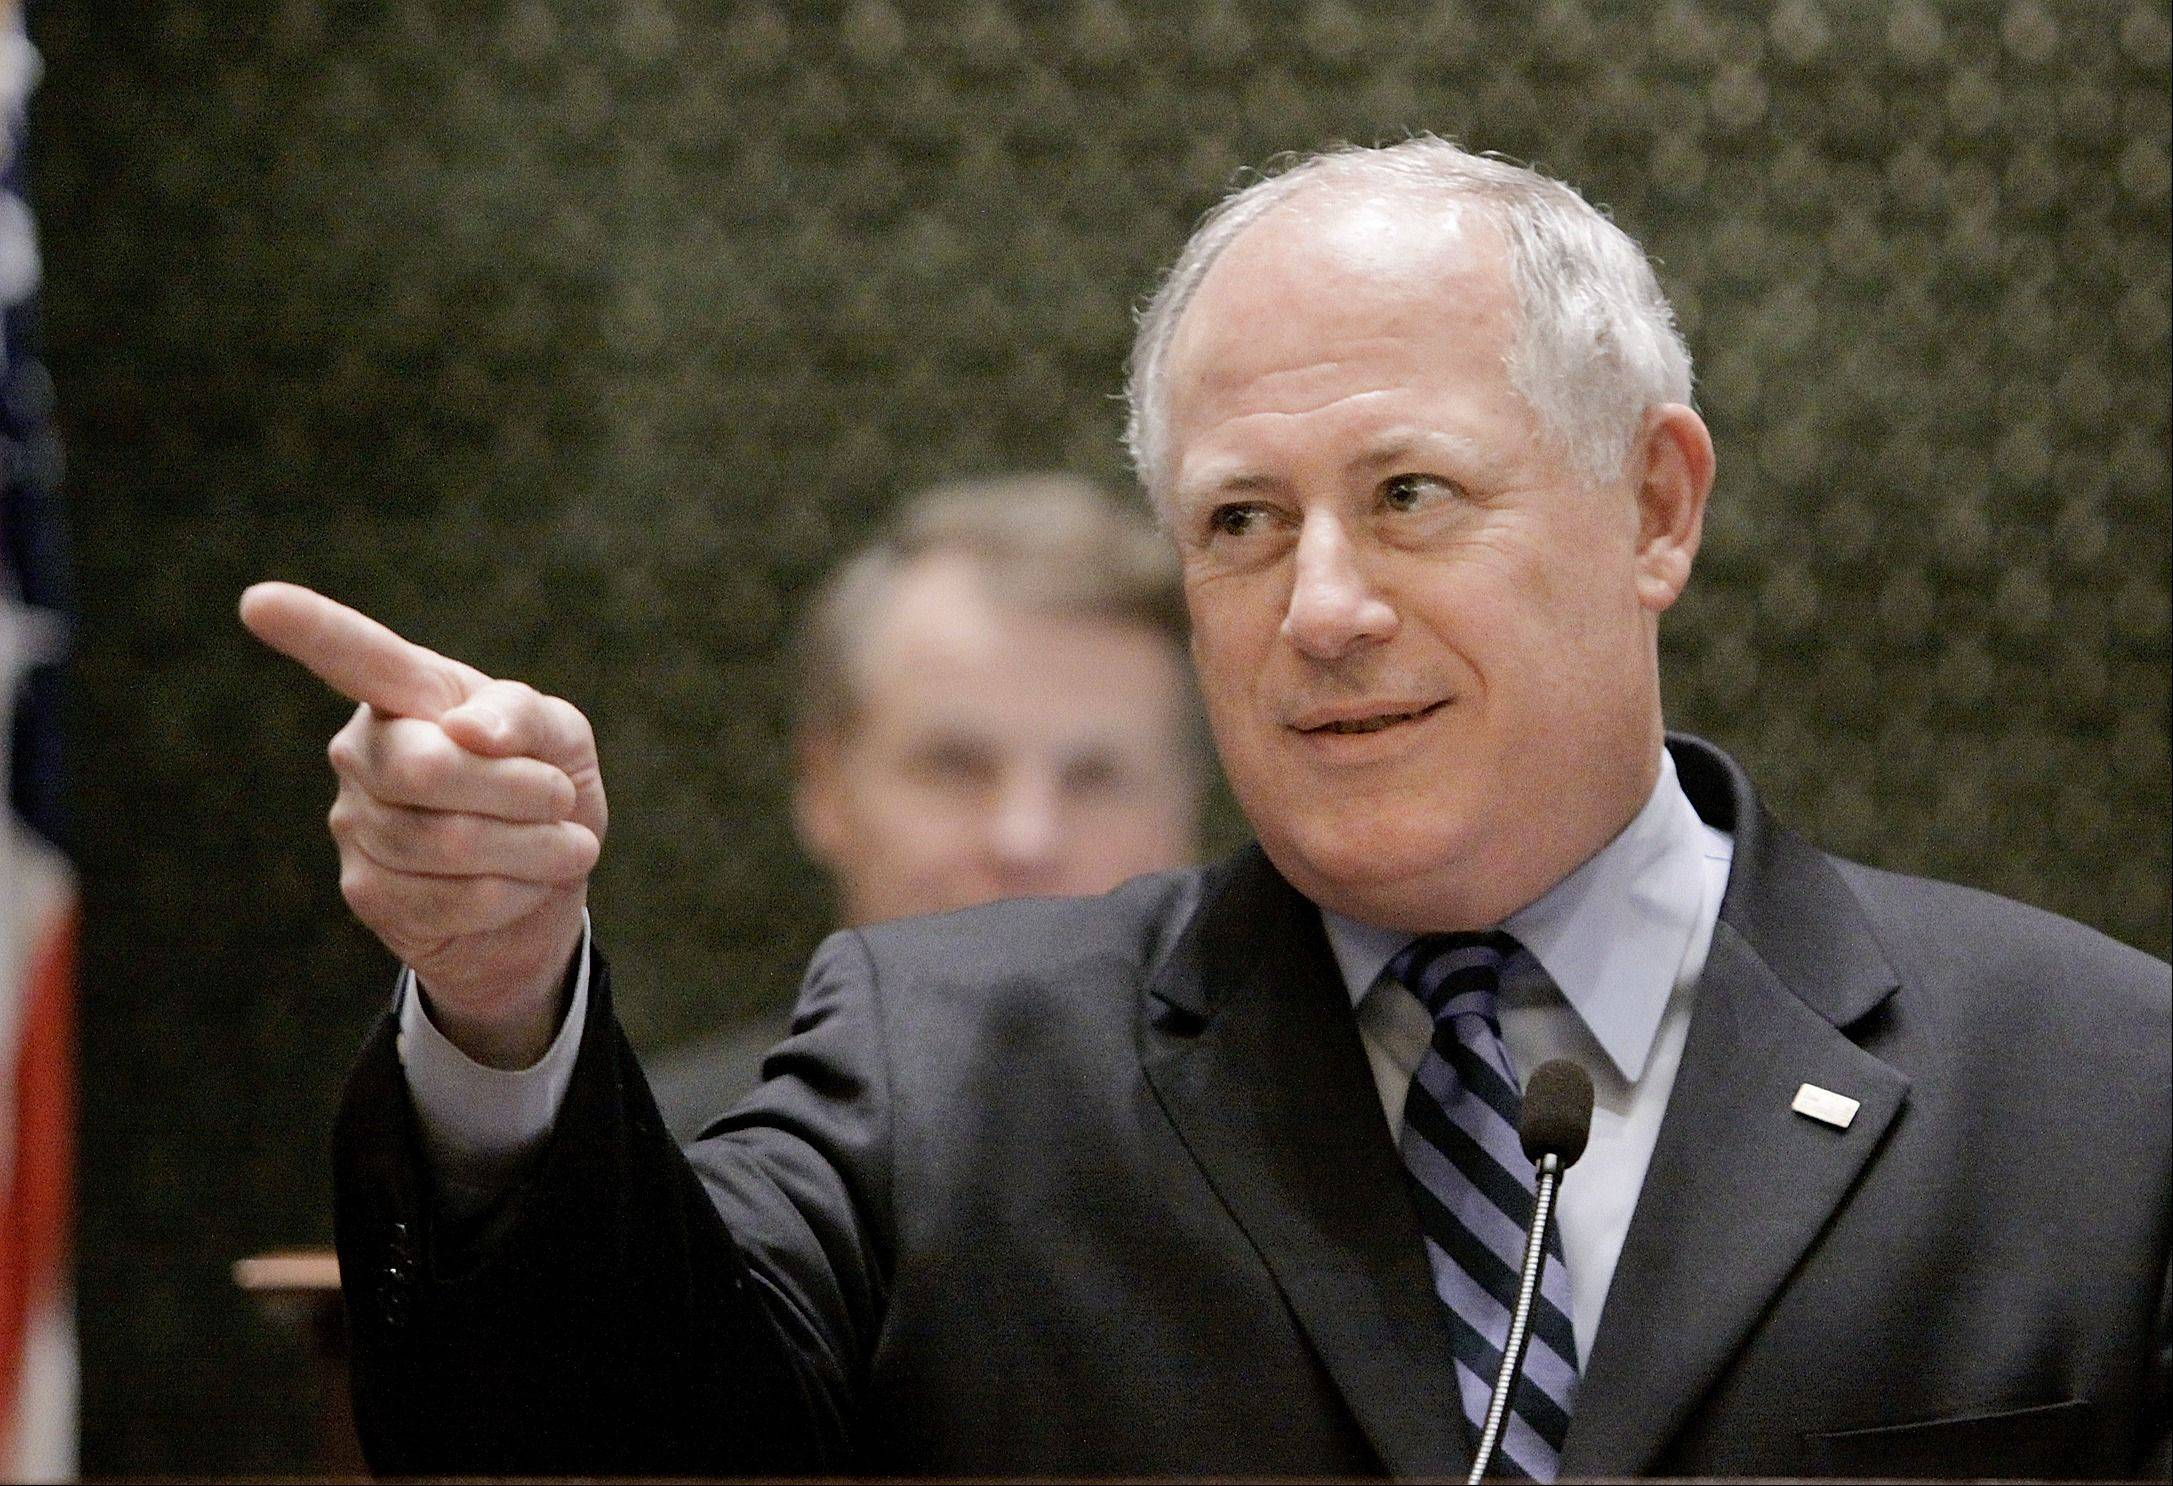 Gov. Pat Quinn announced the state of Illinois has entered a new marketing partnership.